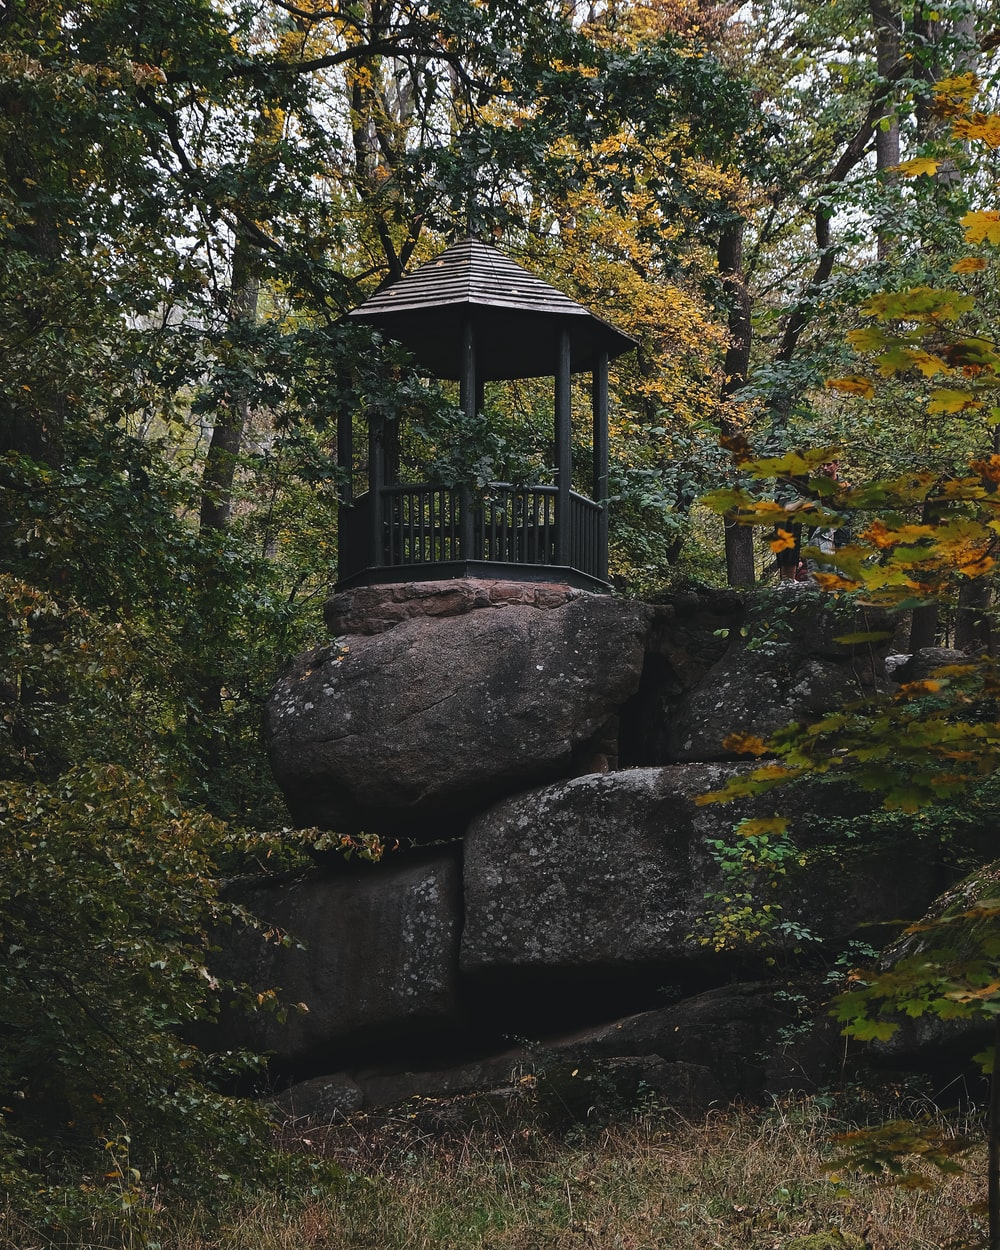 brown wooden gazebo on gray rock formation surrounded by green trees during daytime